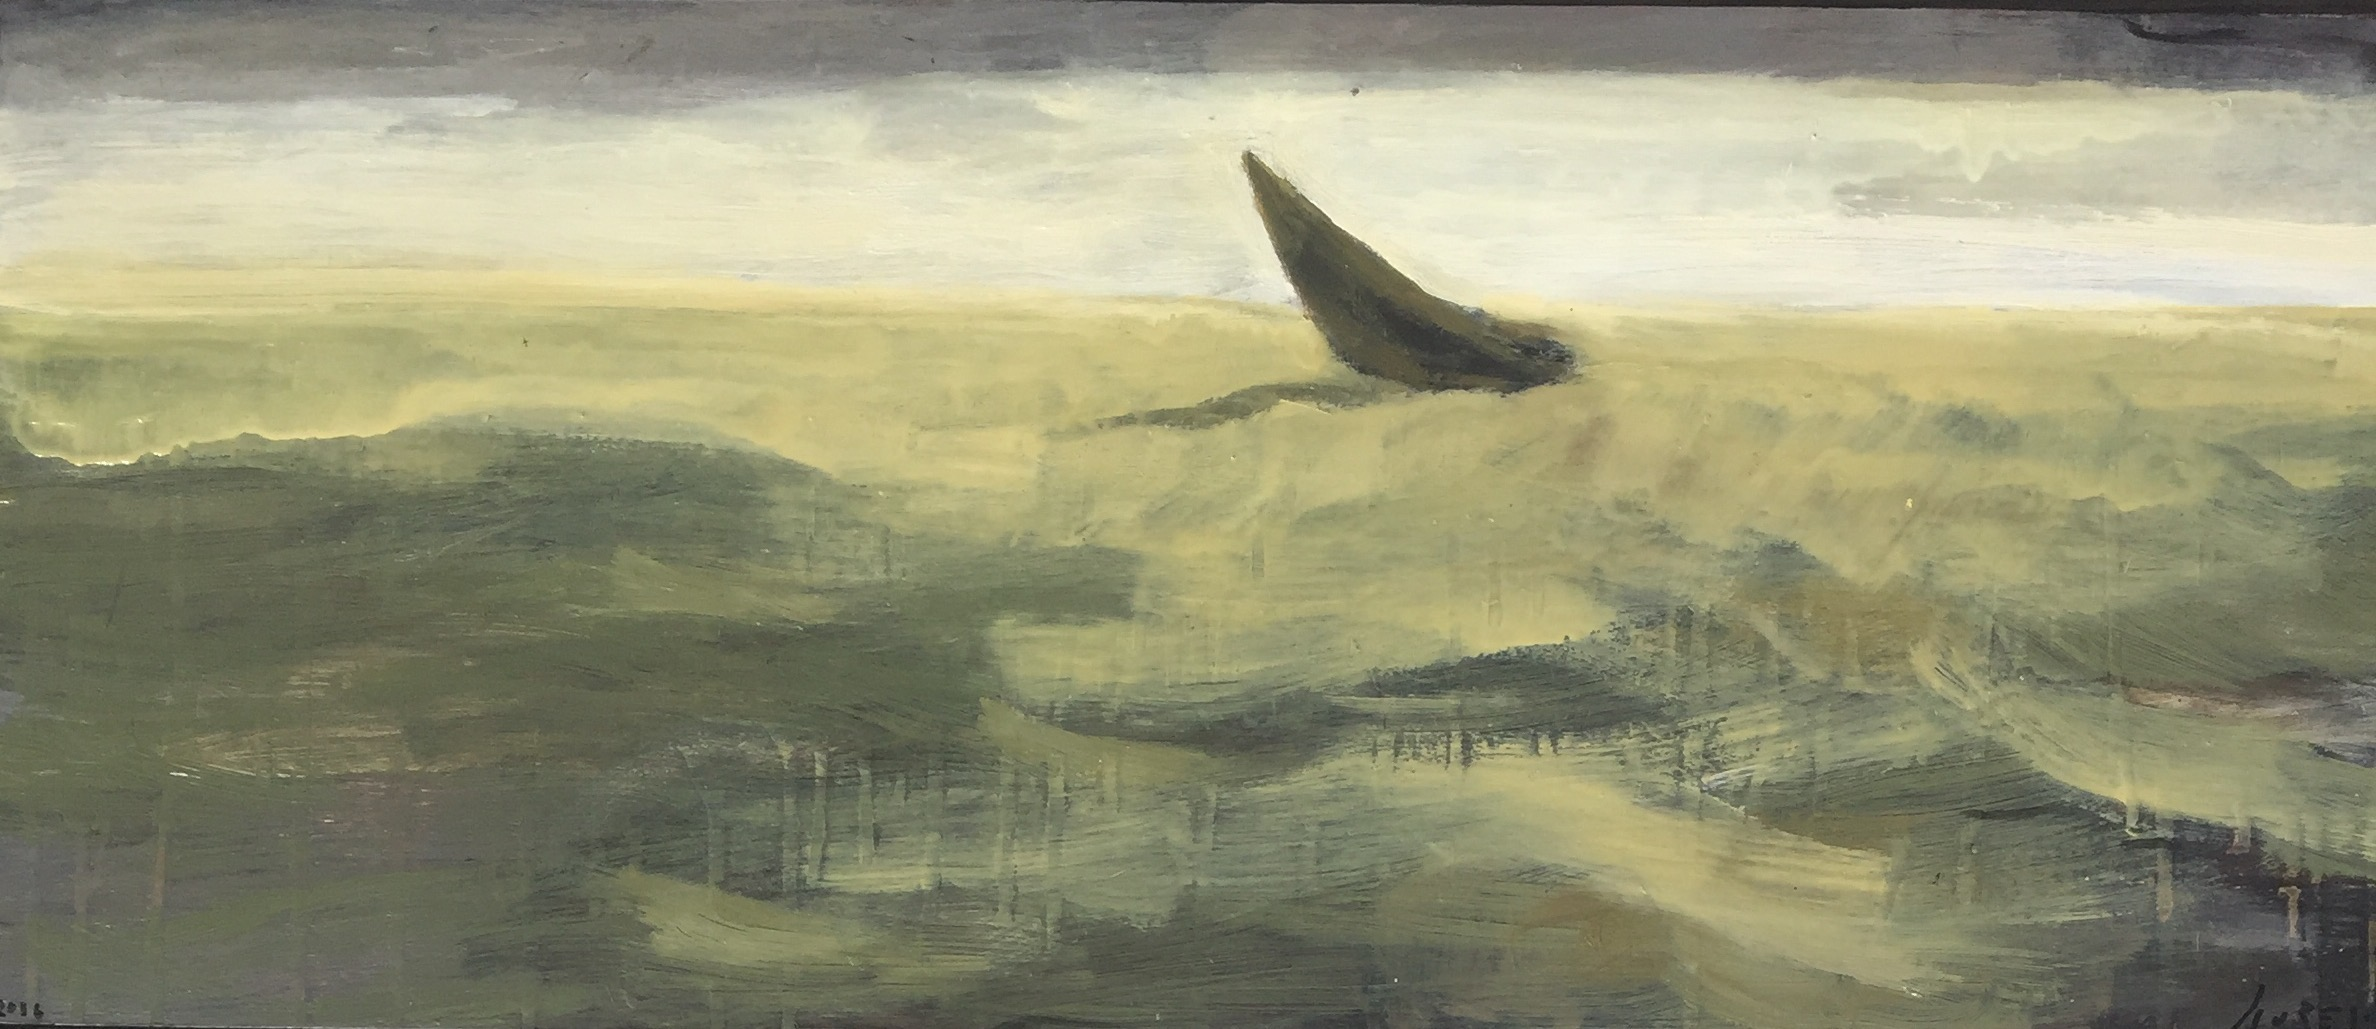 Voilier I, 2017, oIl on canvas, 35 x 15 in, $1,400